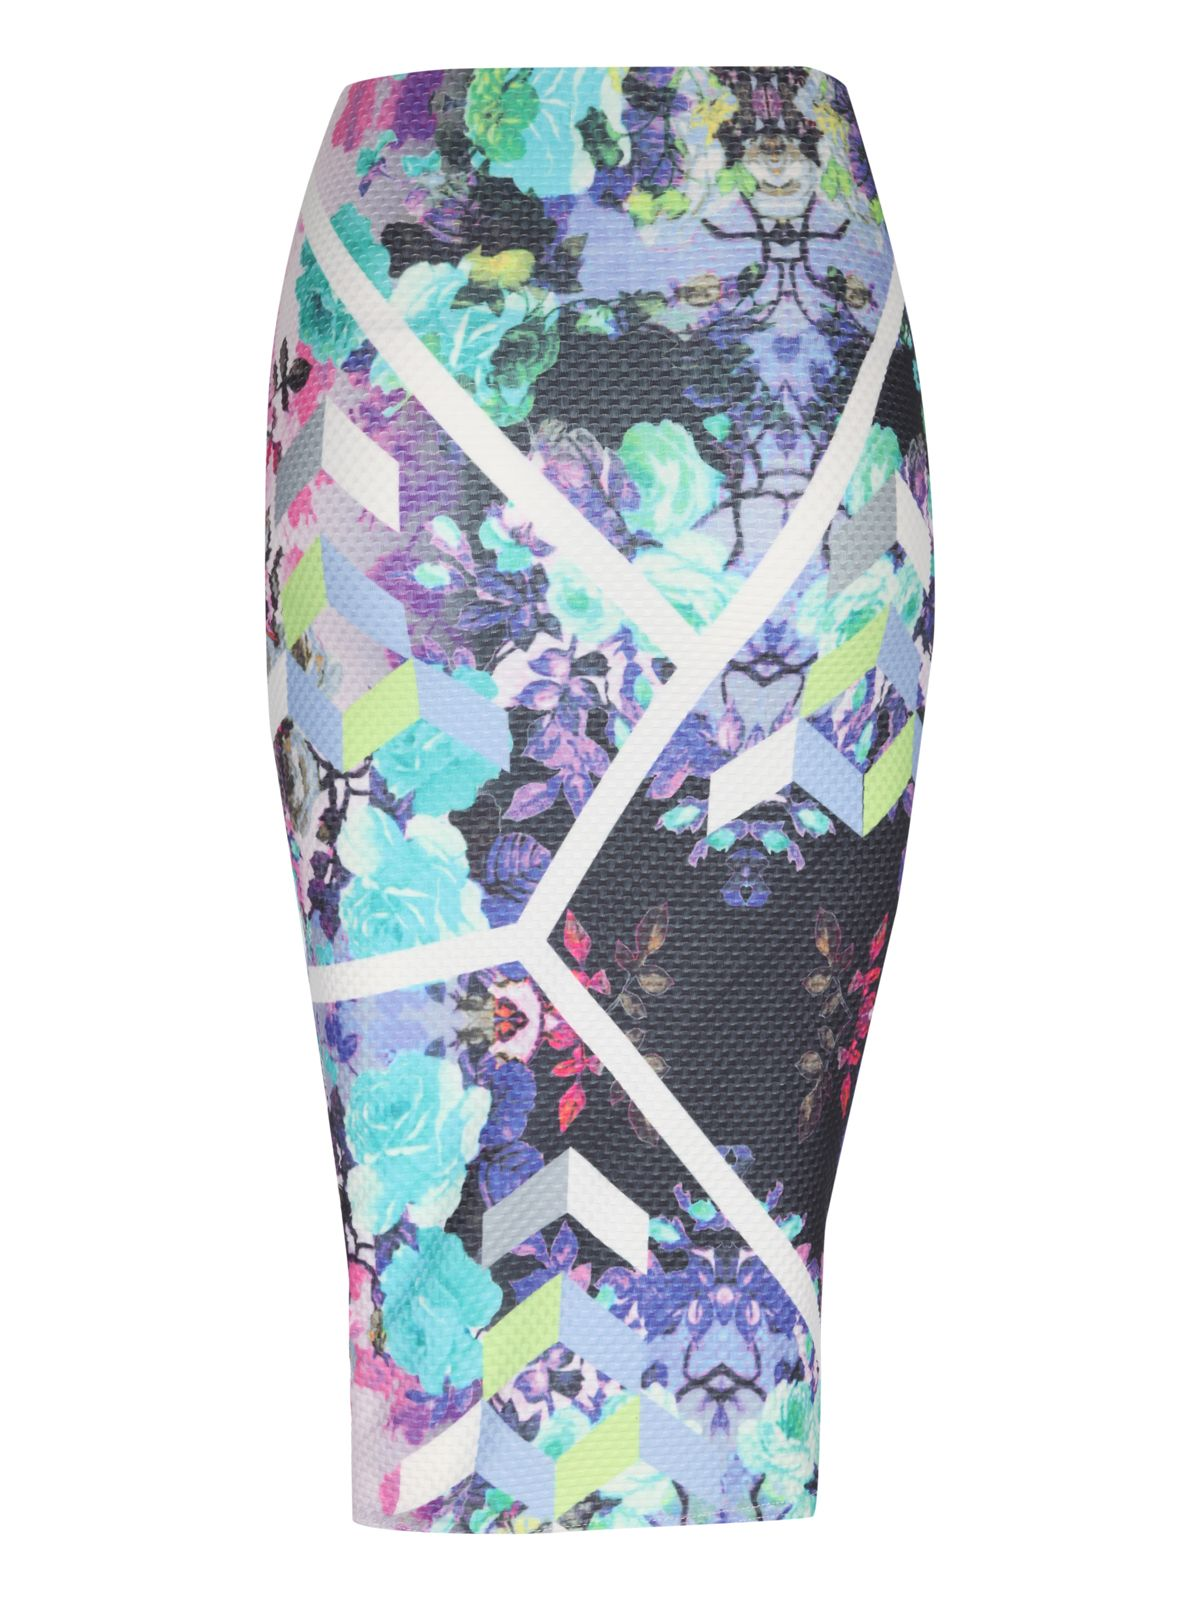 Textured print floral midi pencil skirt